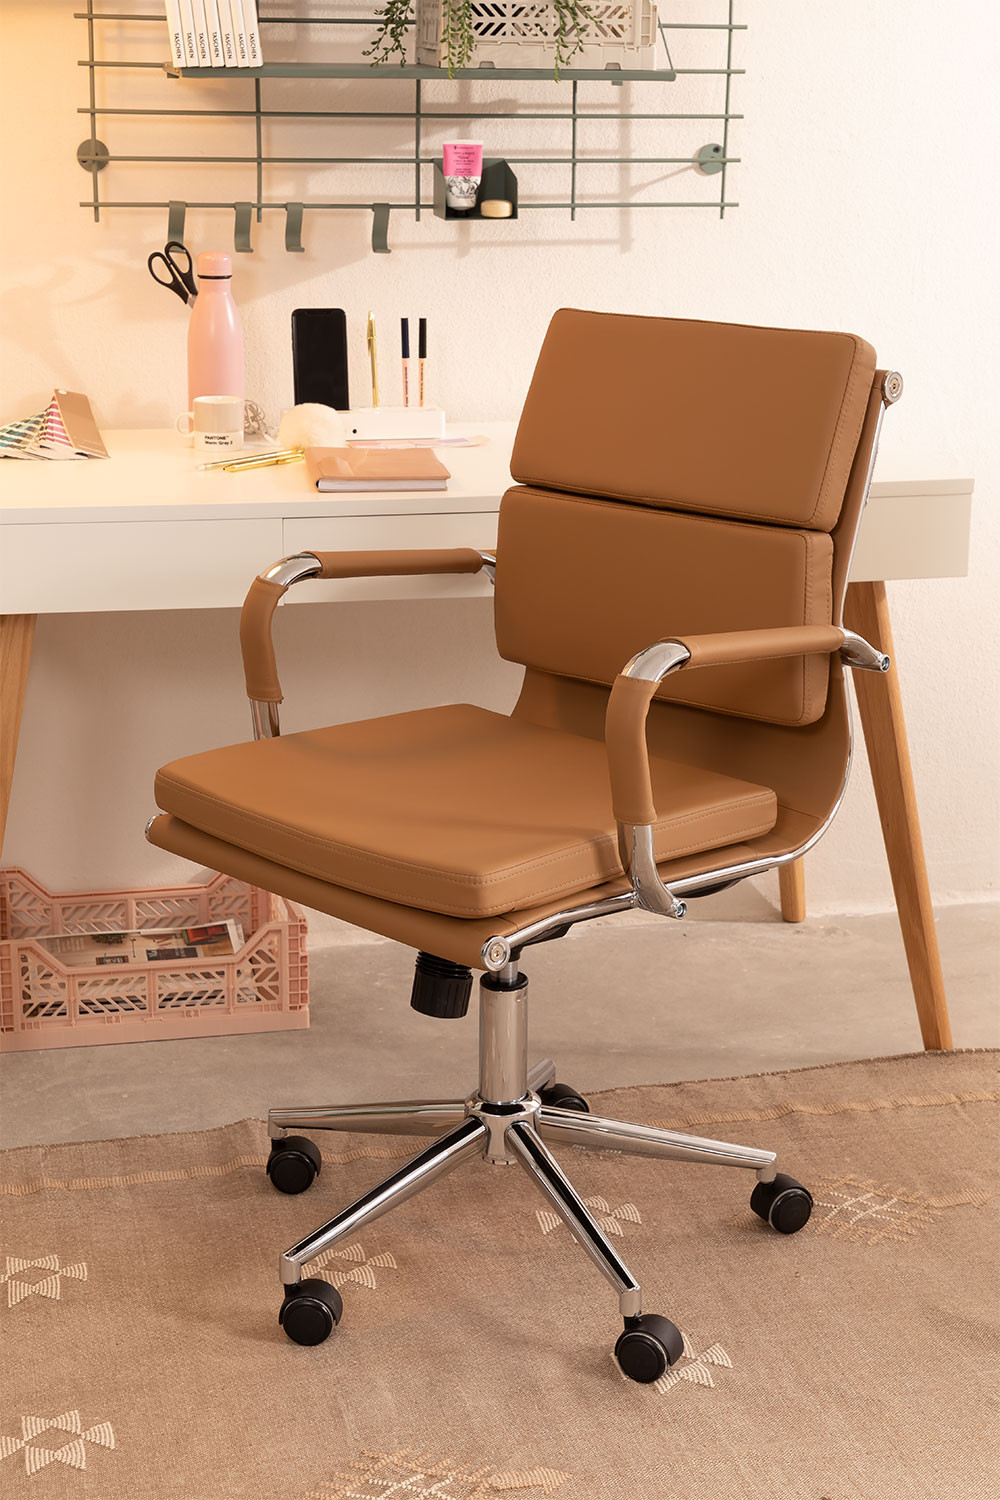 Office Chair on casters Fhöt, gallery image 1